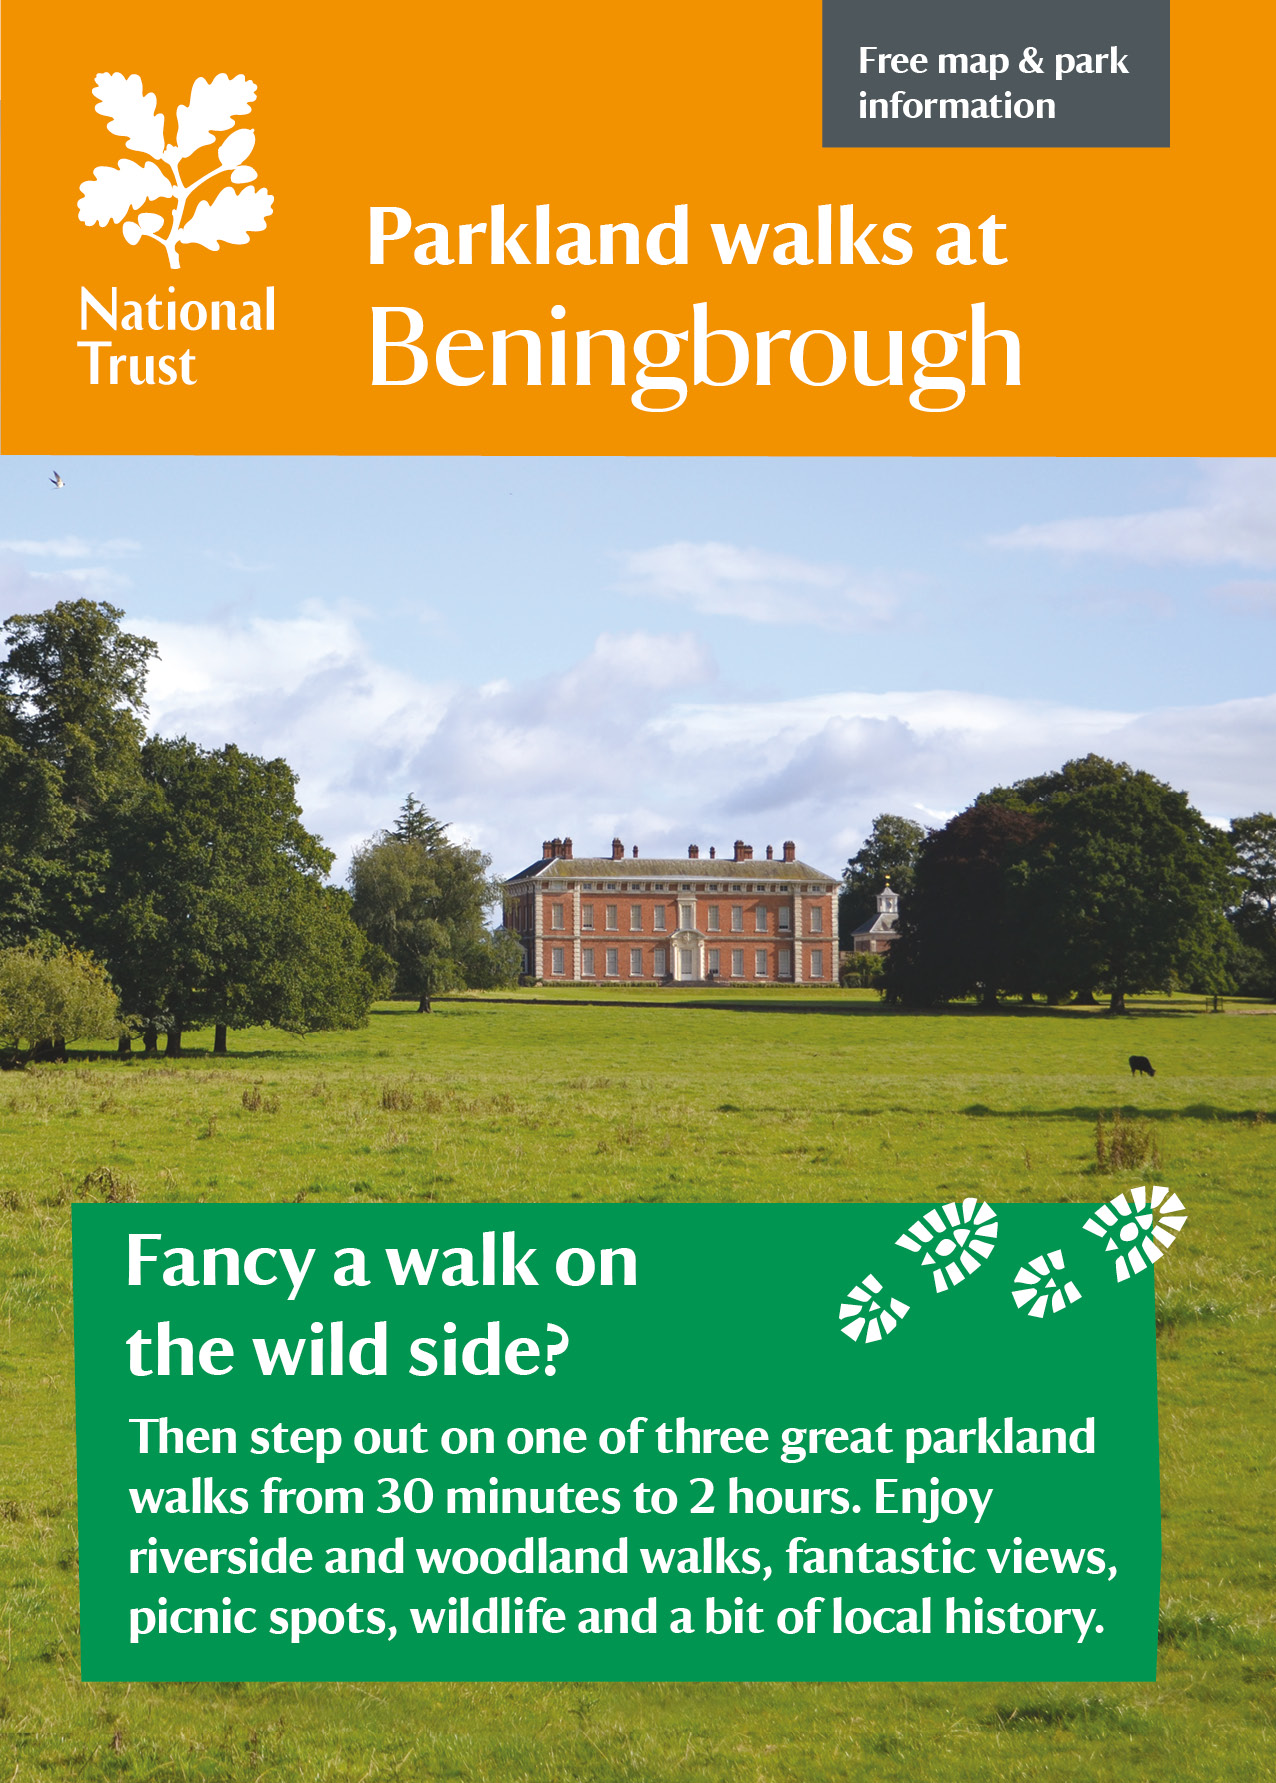 Beningborough Park Walking leaflet